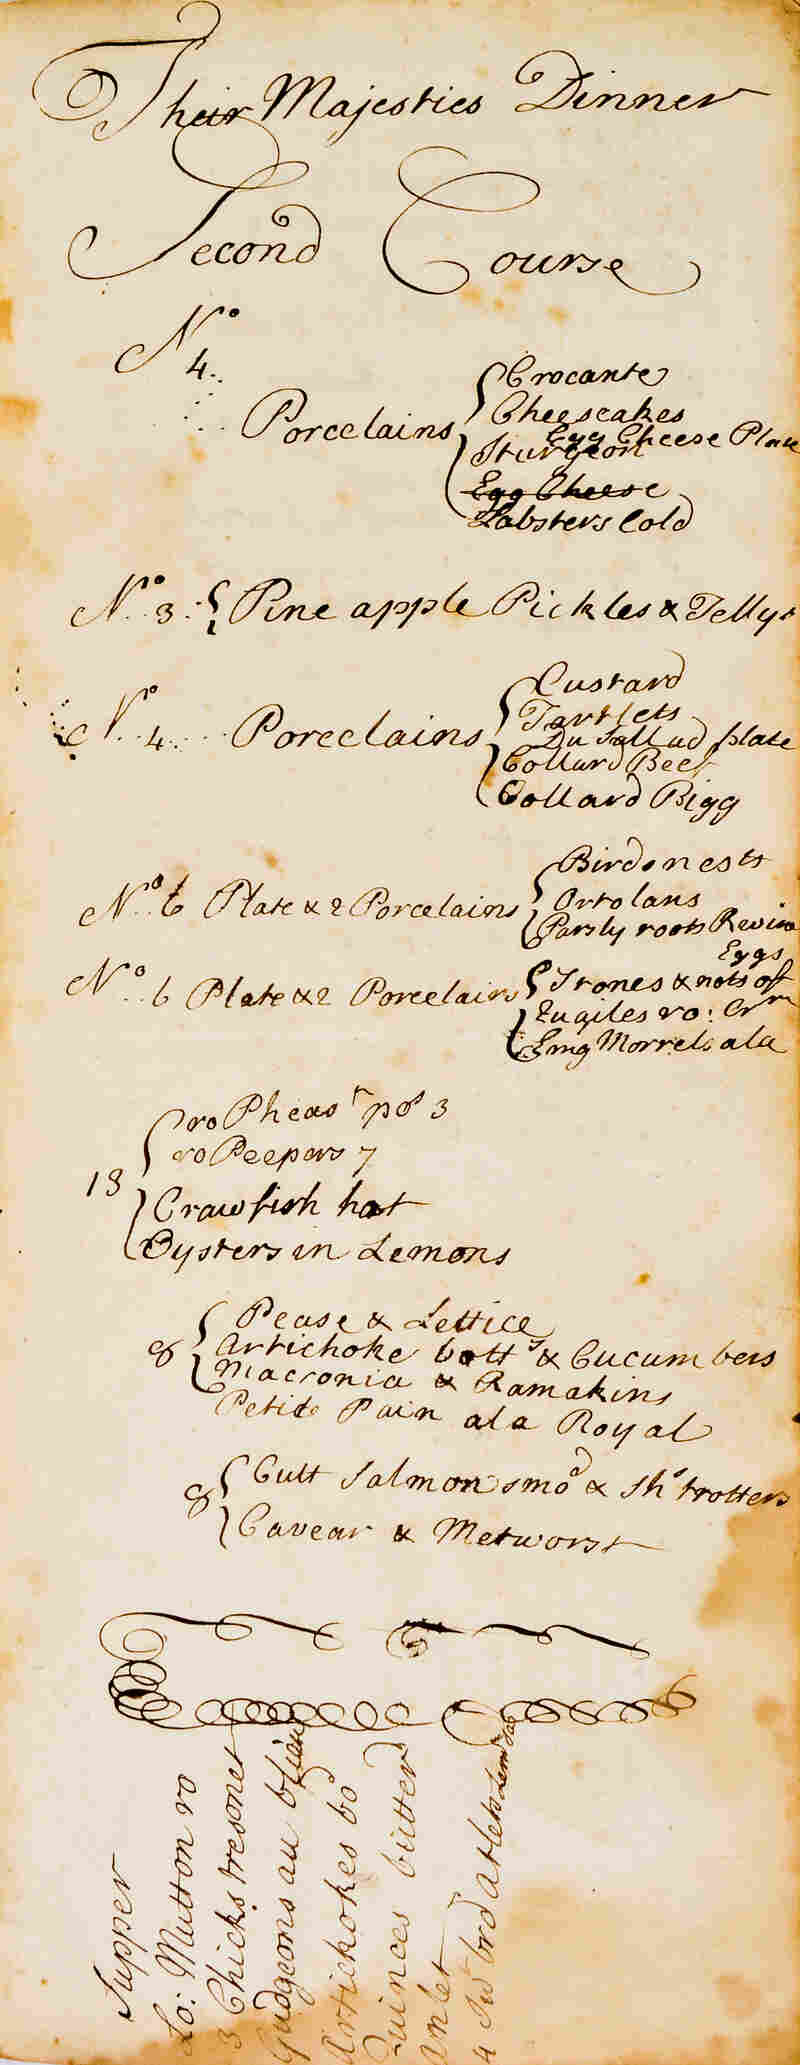 A page from King George II's manuscript menus from September 1737.